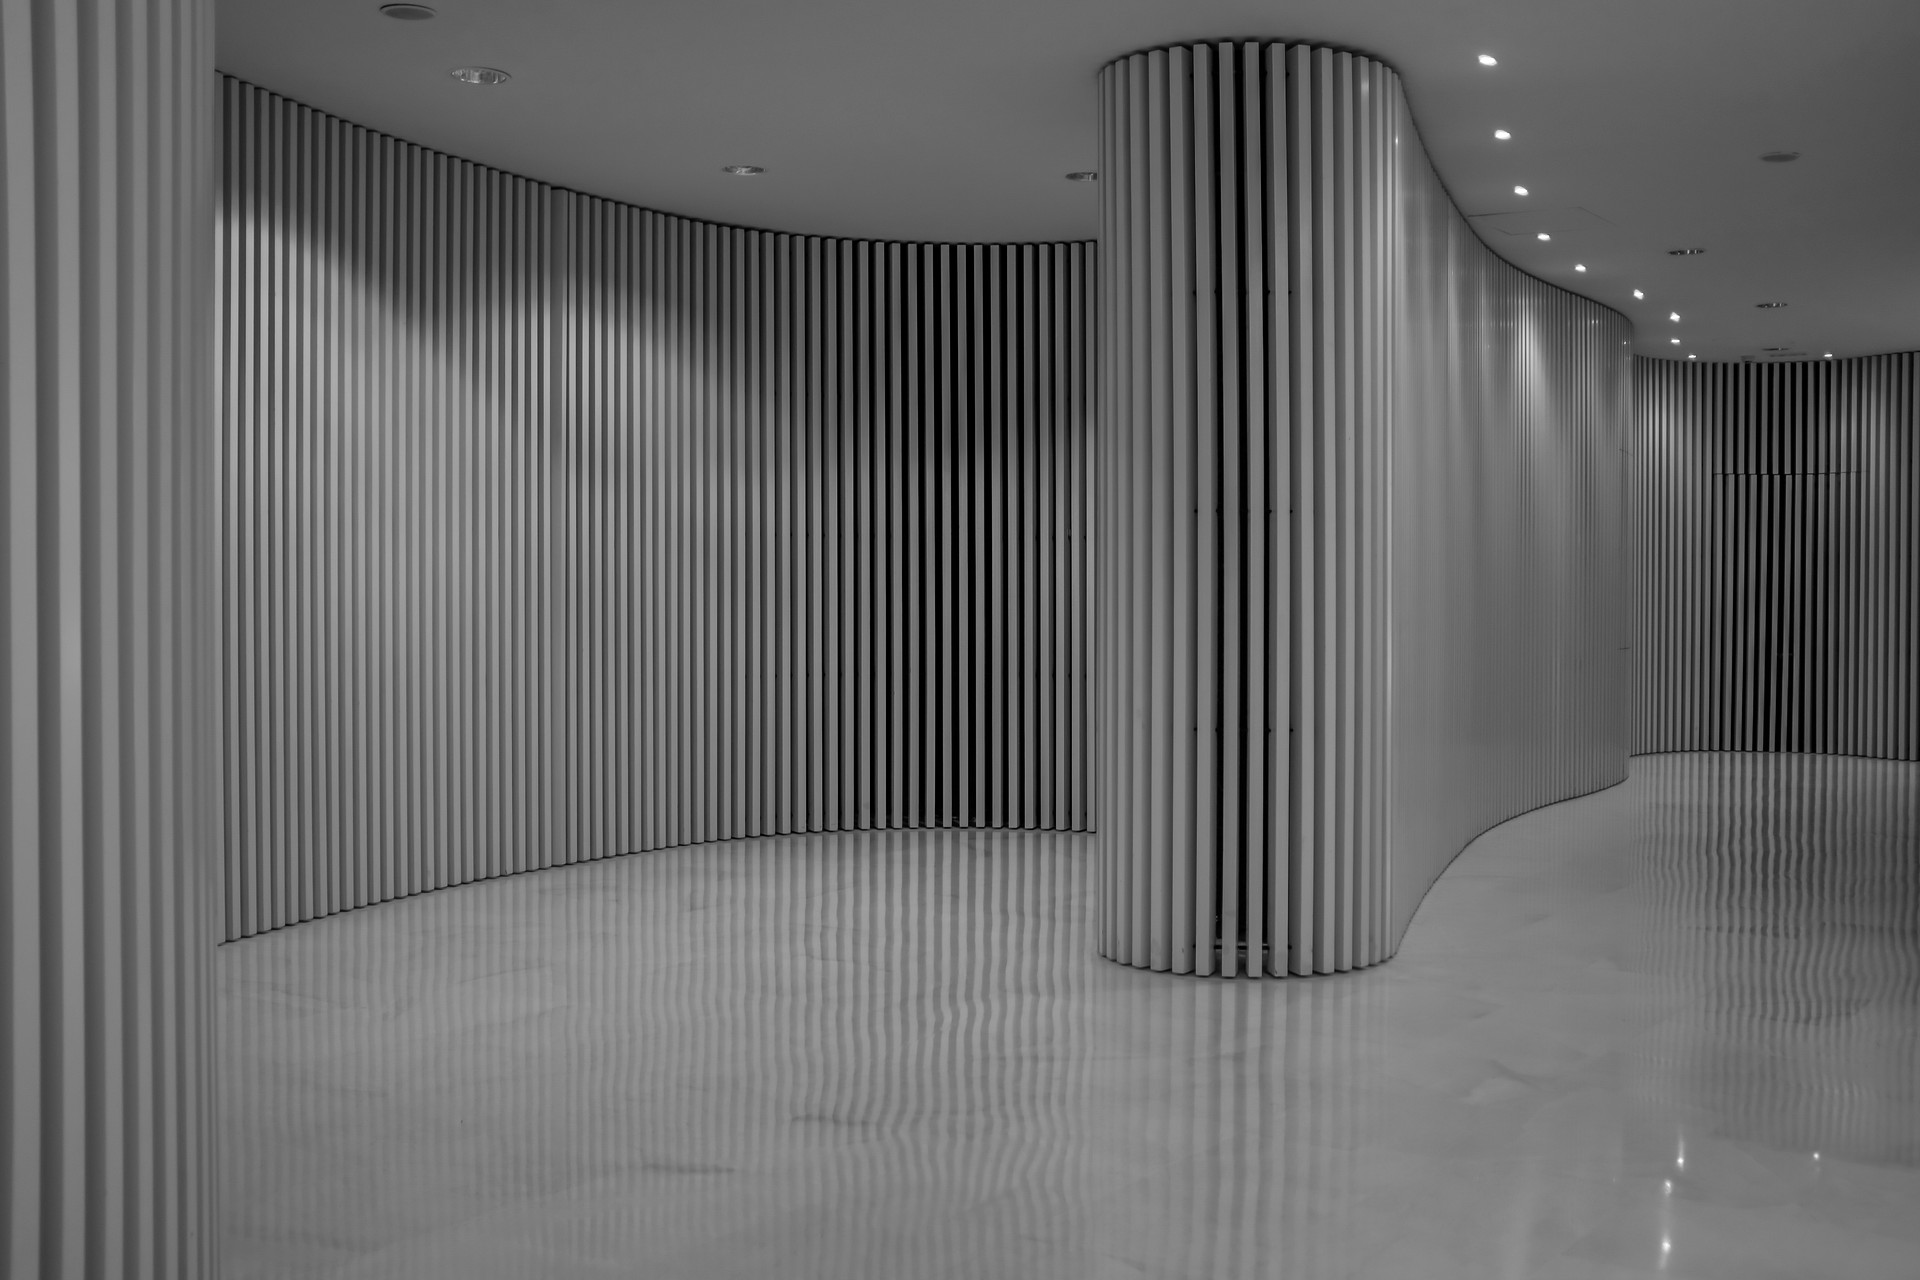 MONO - Corrugated Corridors by Alice Spence Campbell (9 marks)